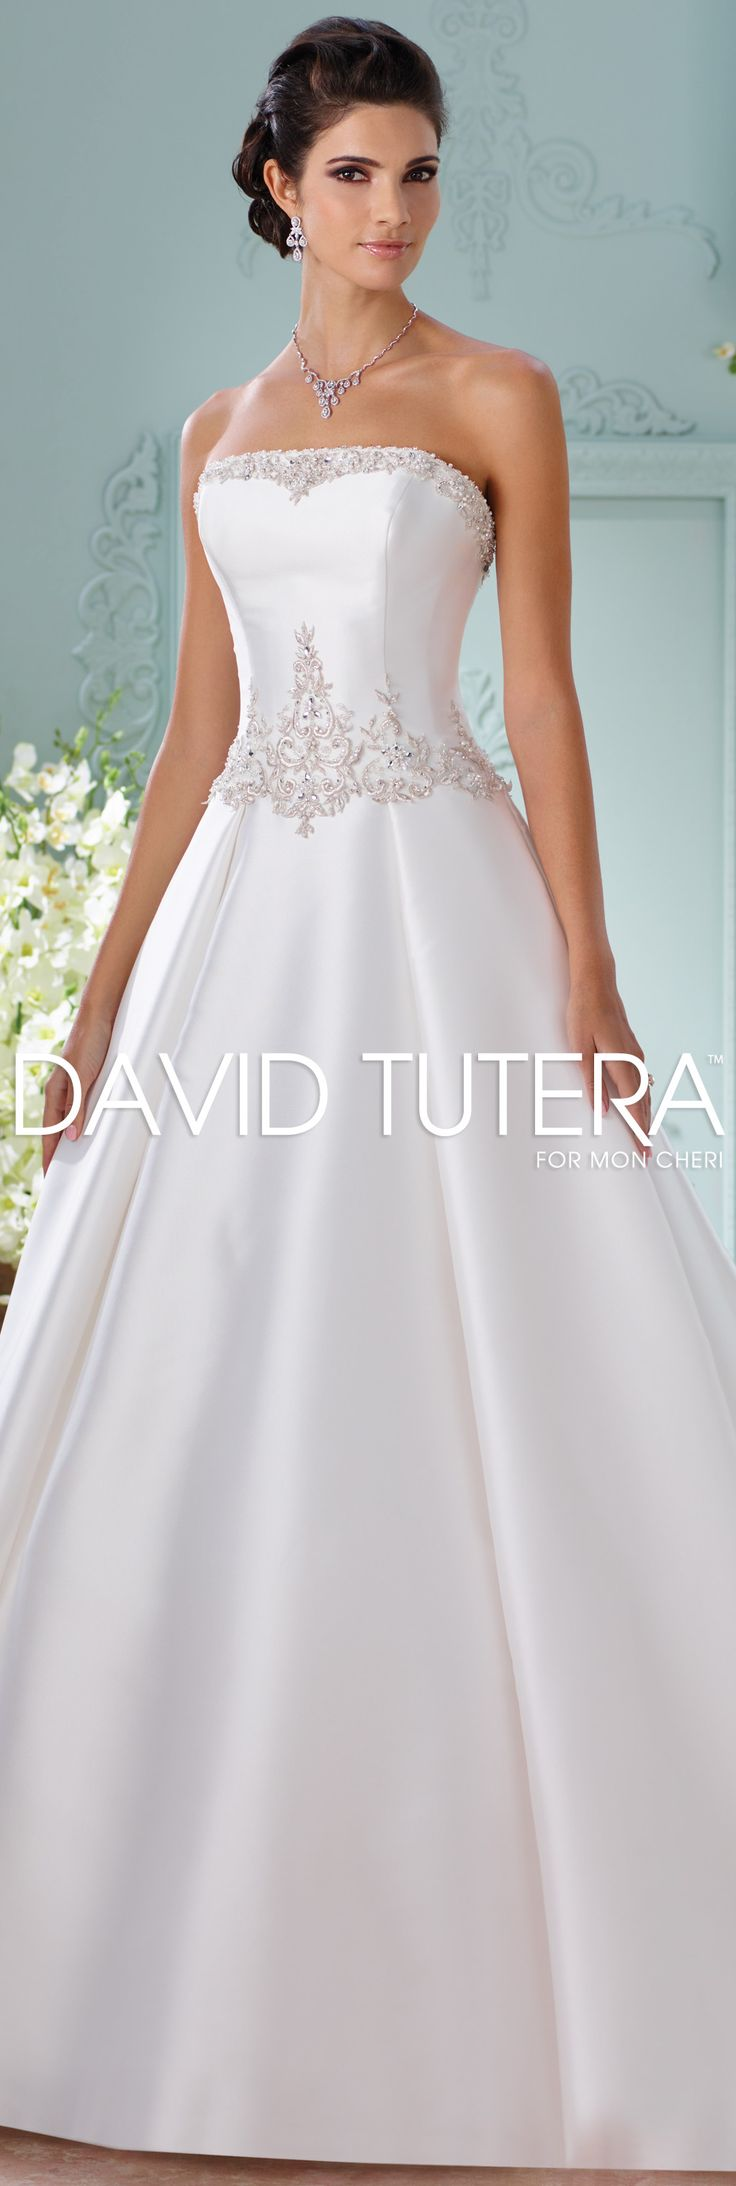 The David Tutera for Mon Cheri Spring 2016 Wedding Gown Collection - Style No. 116223 Selena #silkweddingdresses